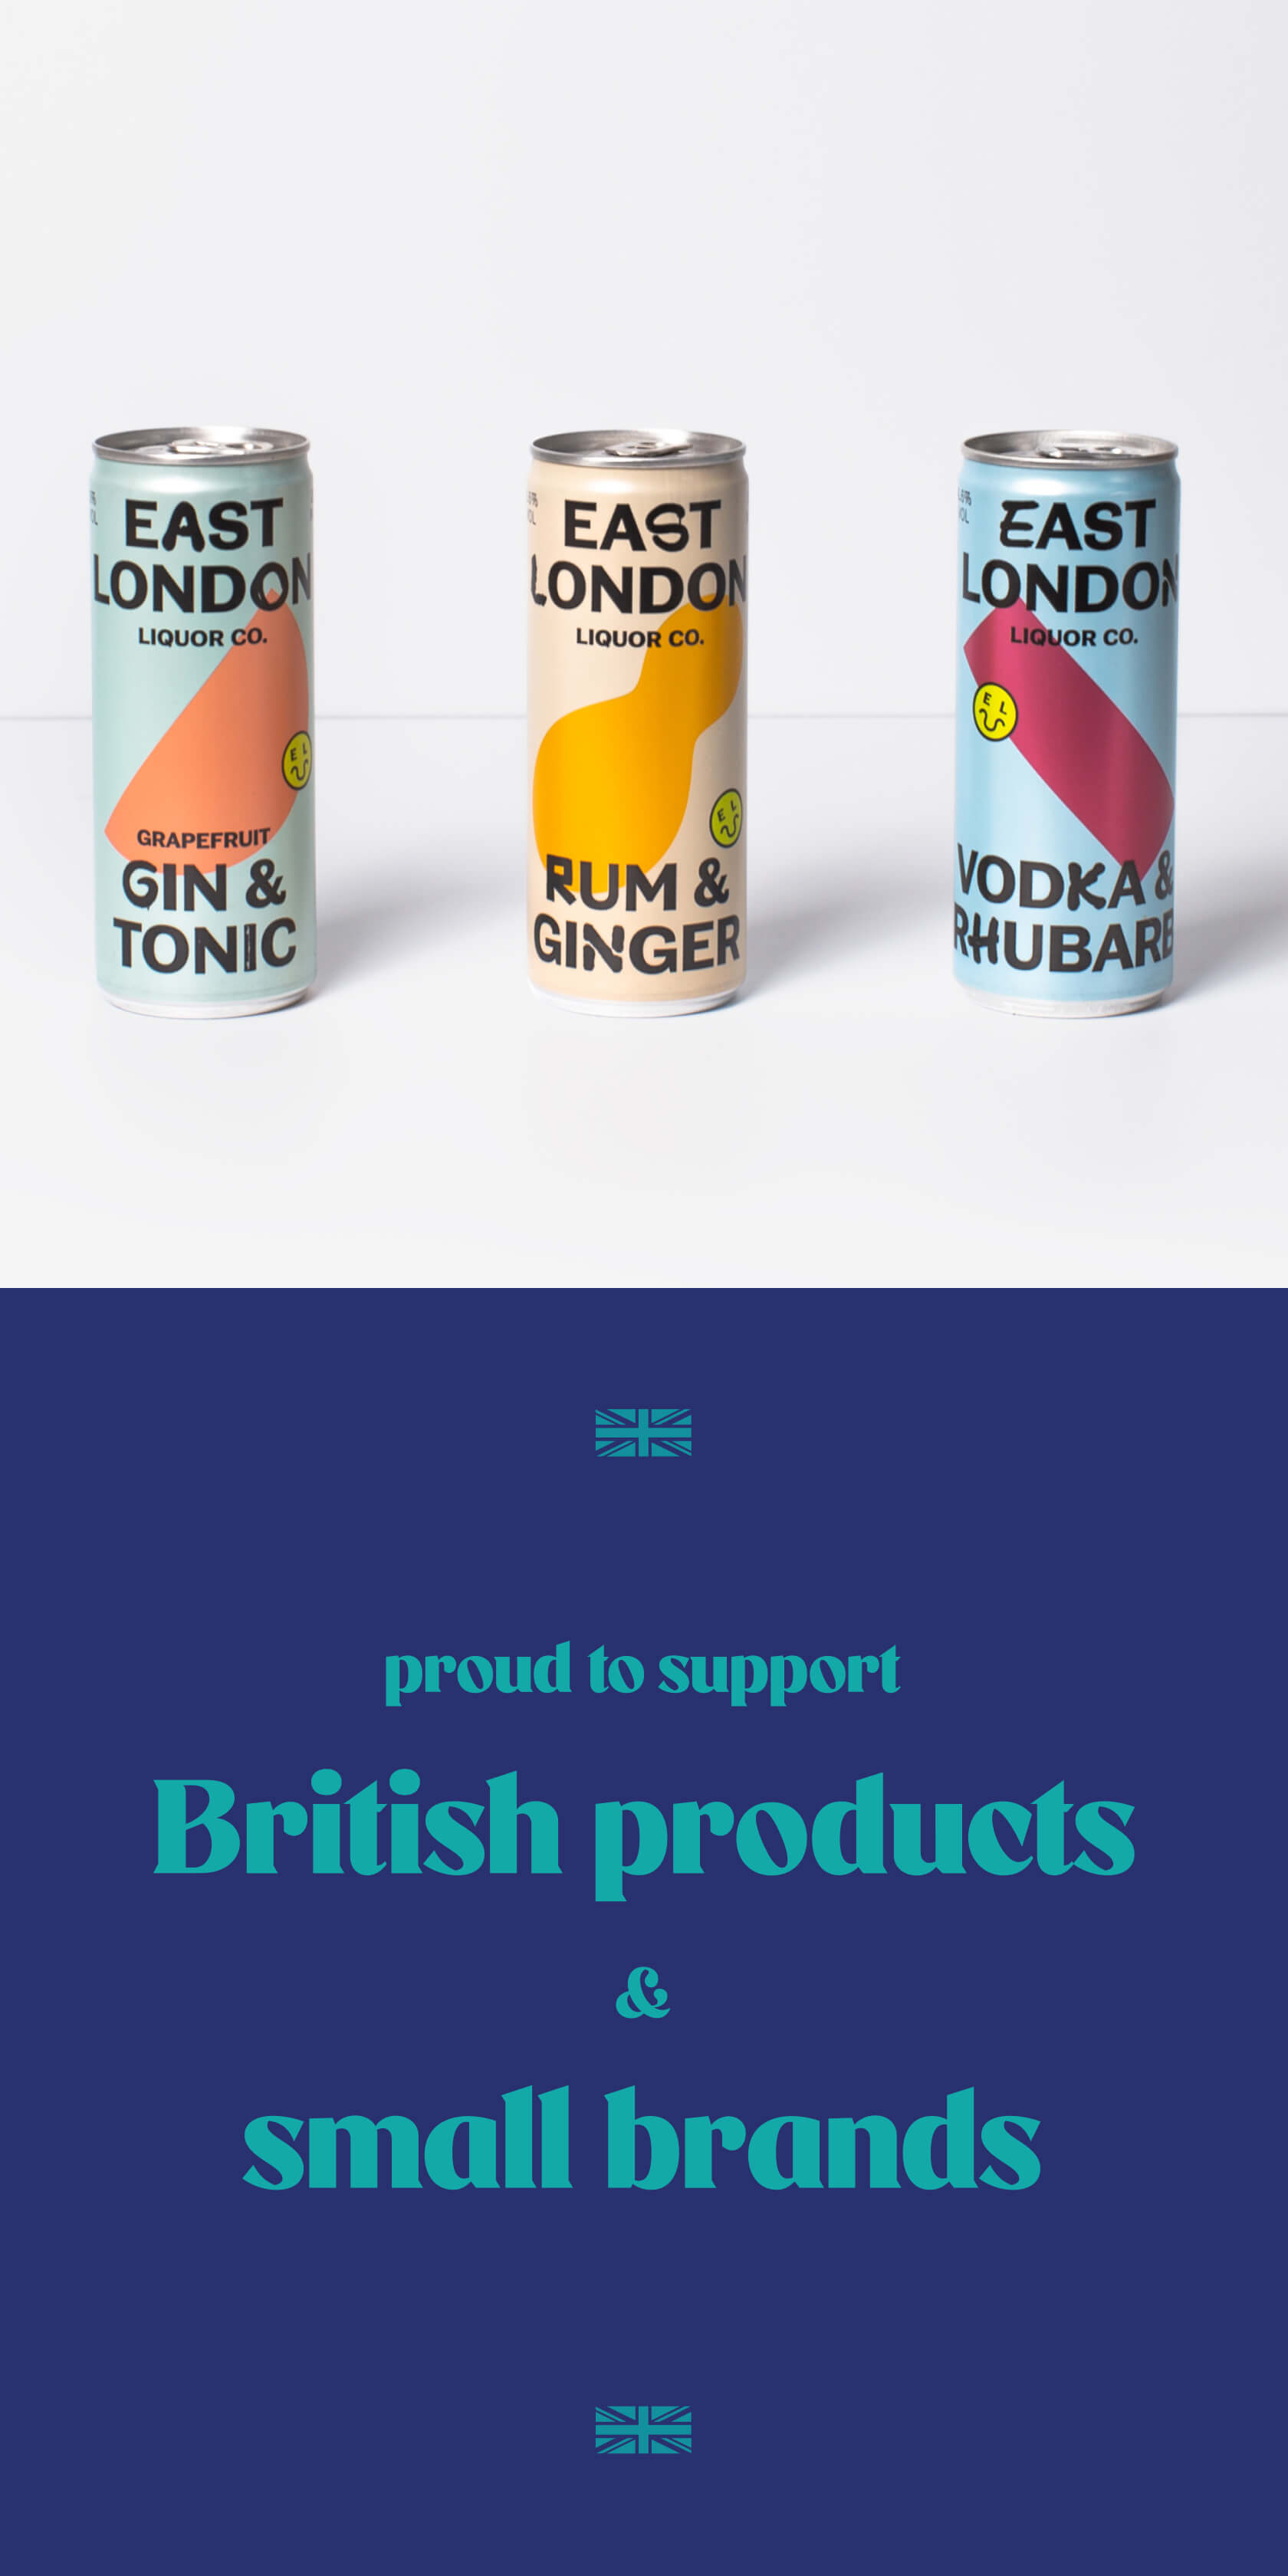 Proud to support British products & small brands